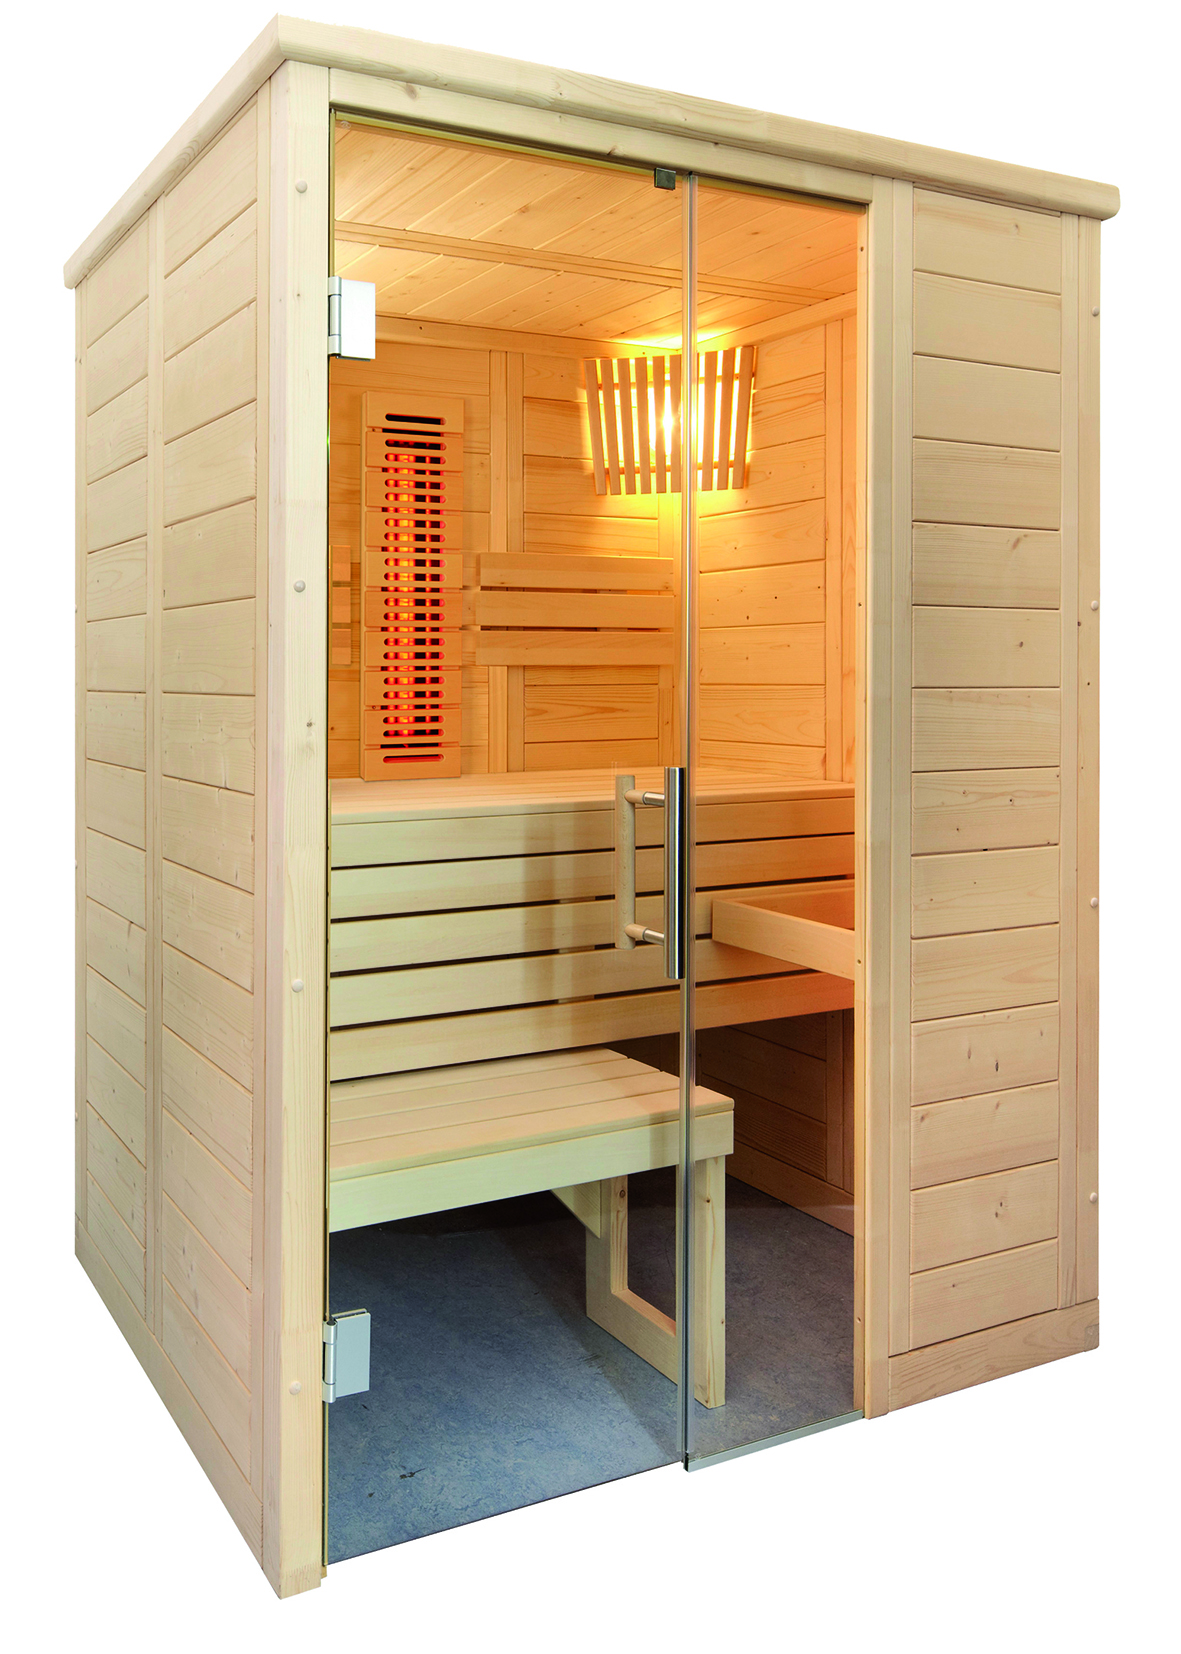 infrarotsauna kombination aus sauna und infrarot online kaufen. Black Bedroom Furniture Sets. Home Design Ideas